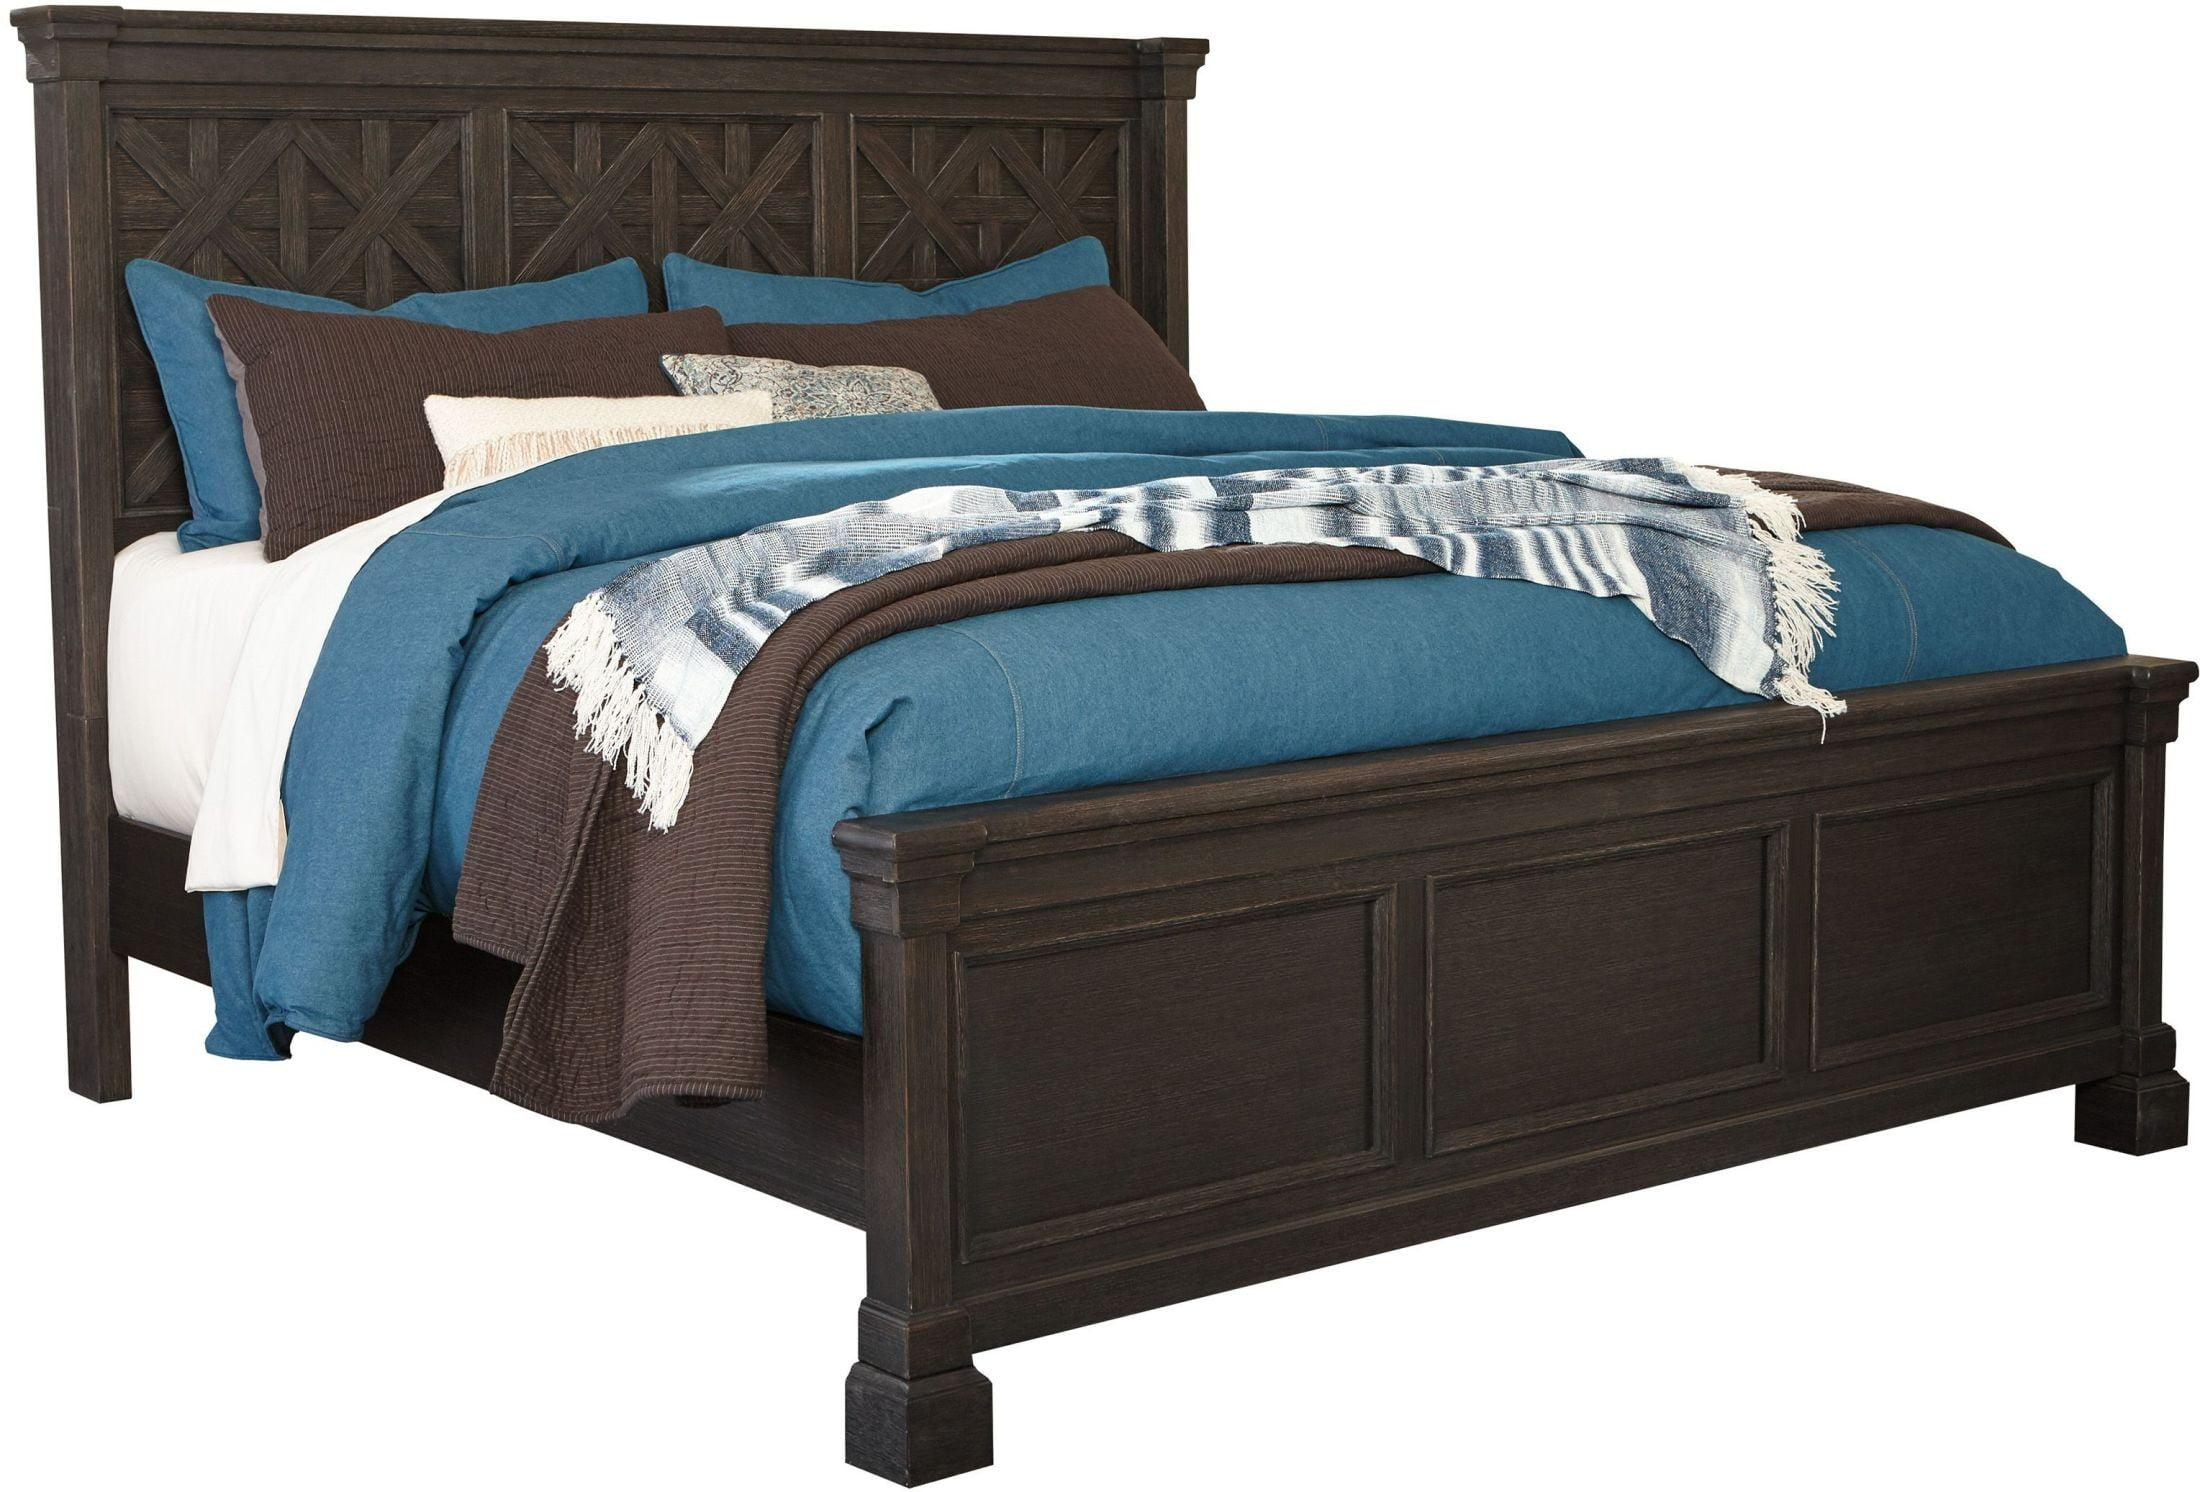 Tyler Creek Black King Panel Bed From Ashley Coleman